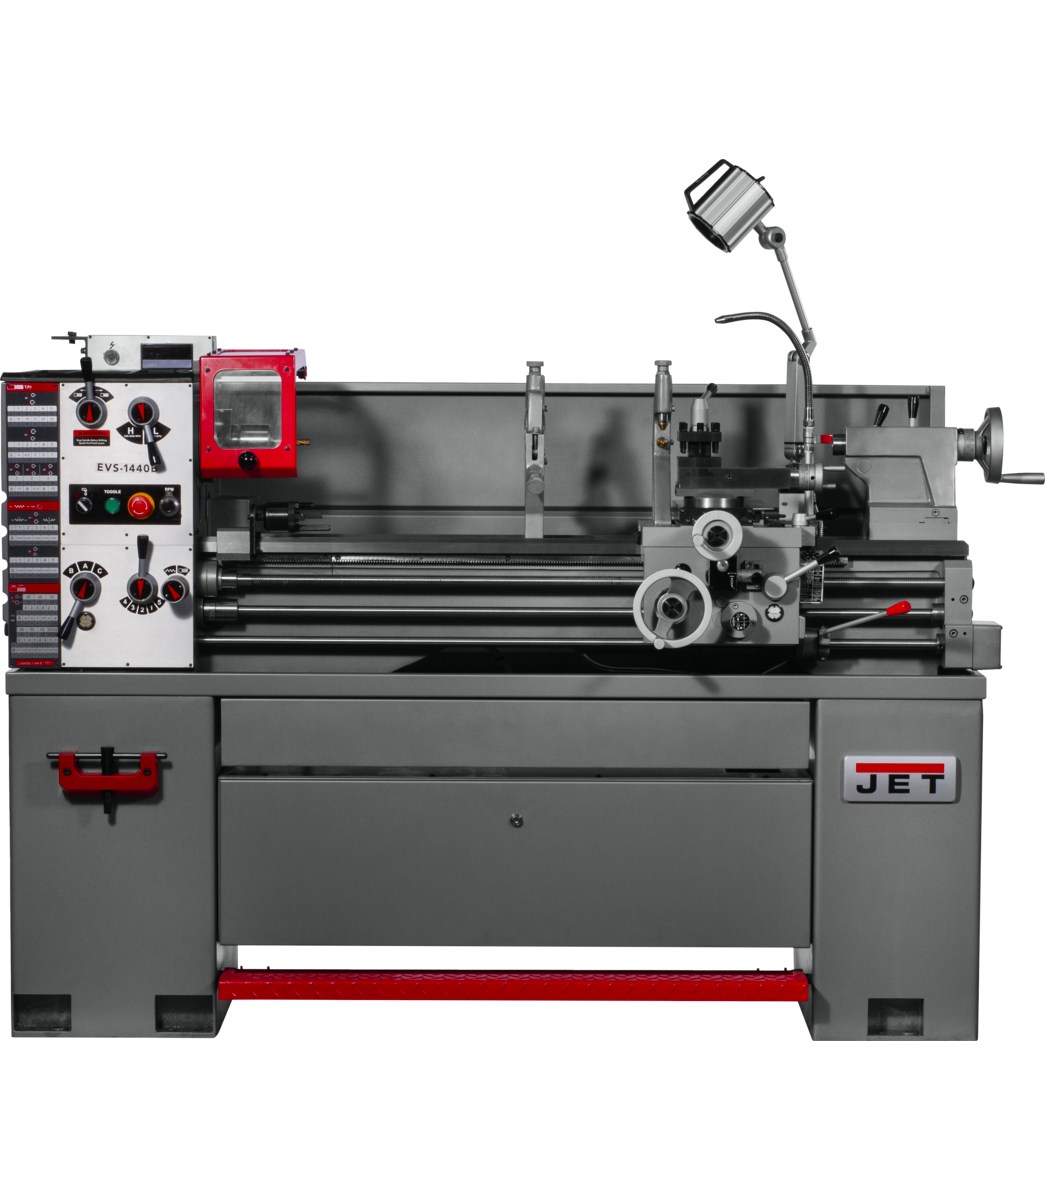 EVS-1440B Electronic Variable Speed Bench Lathe, 3HP